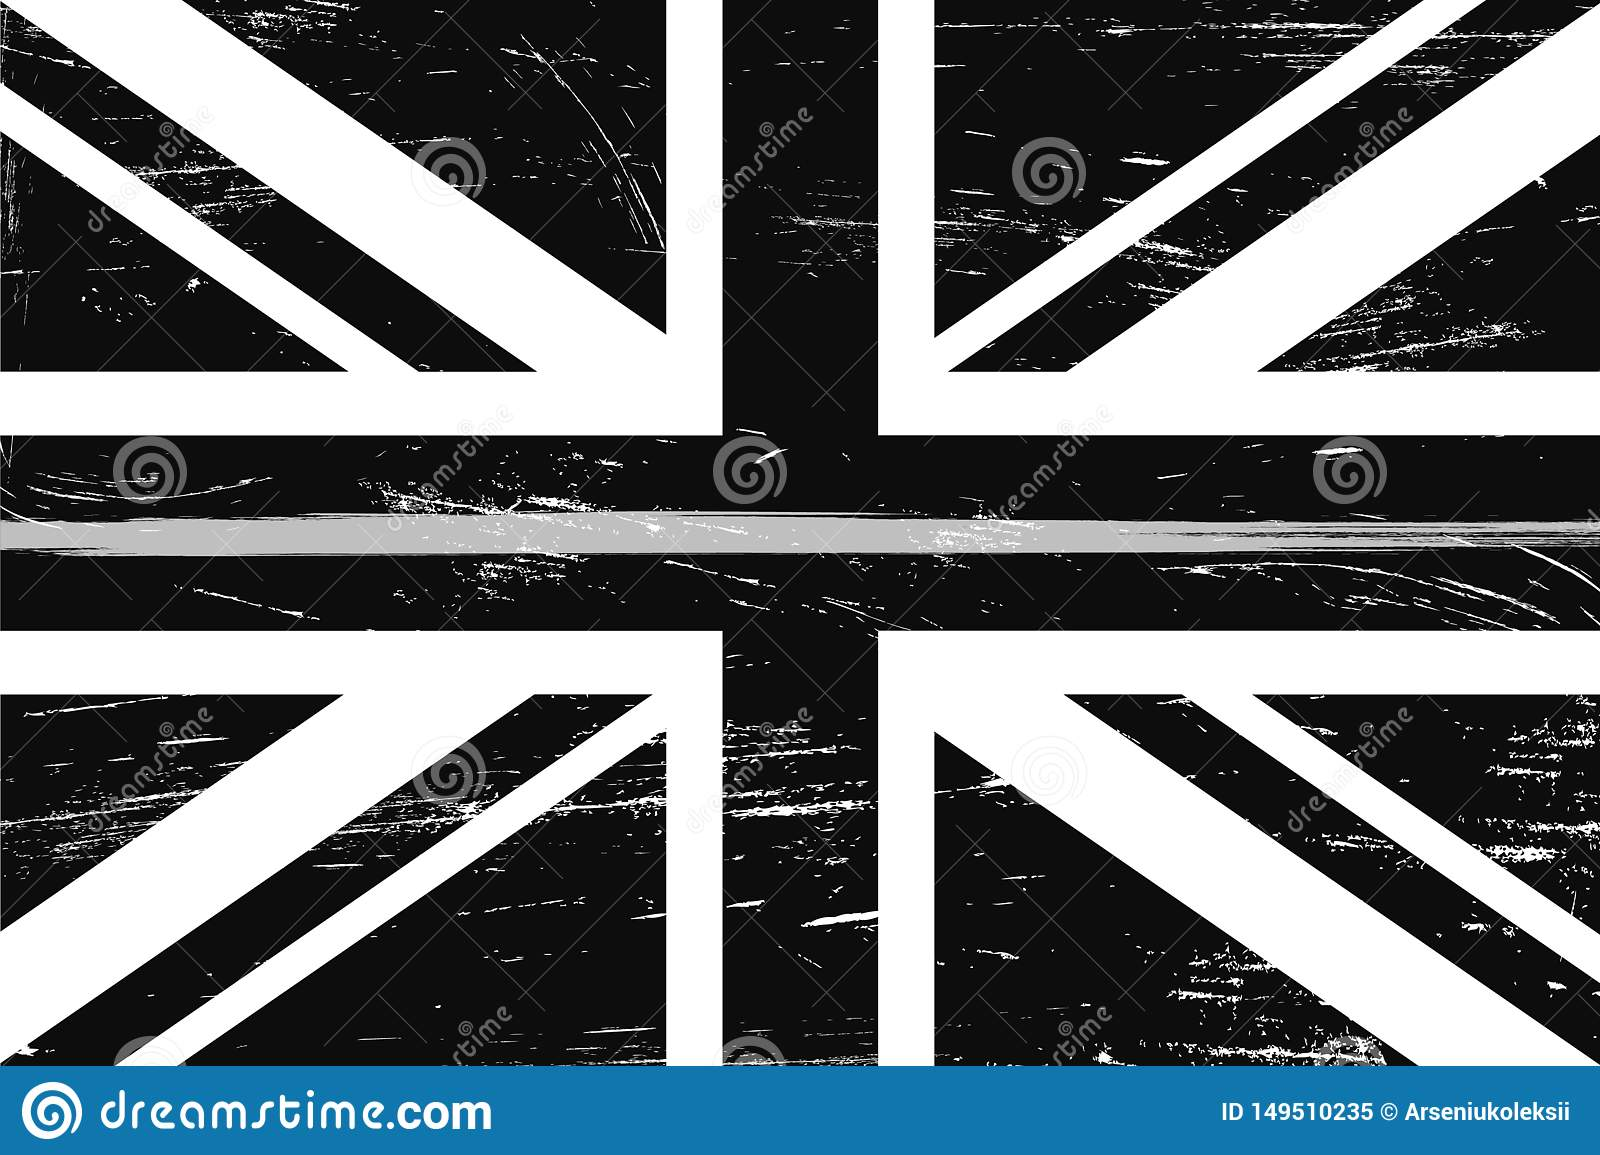 Grunge United Kingdom flag with a thin gray or silver line